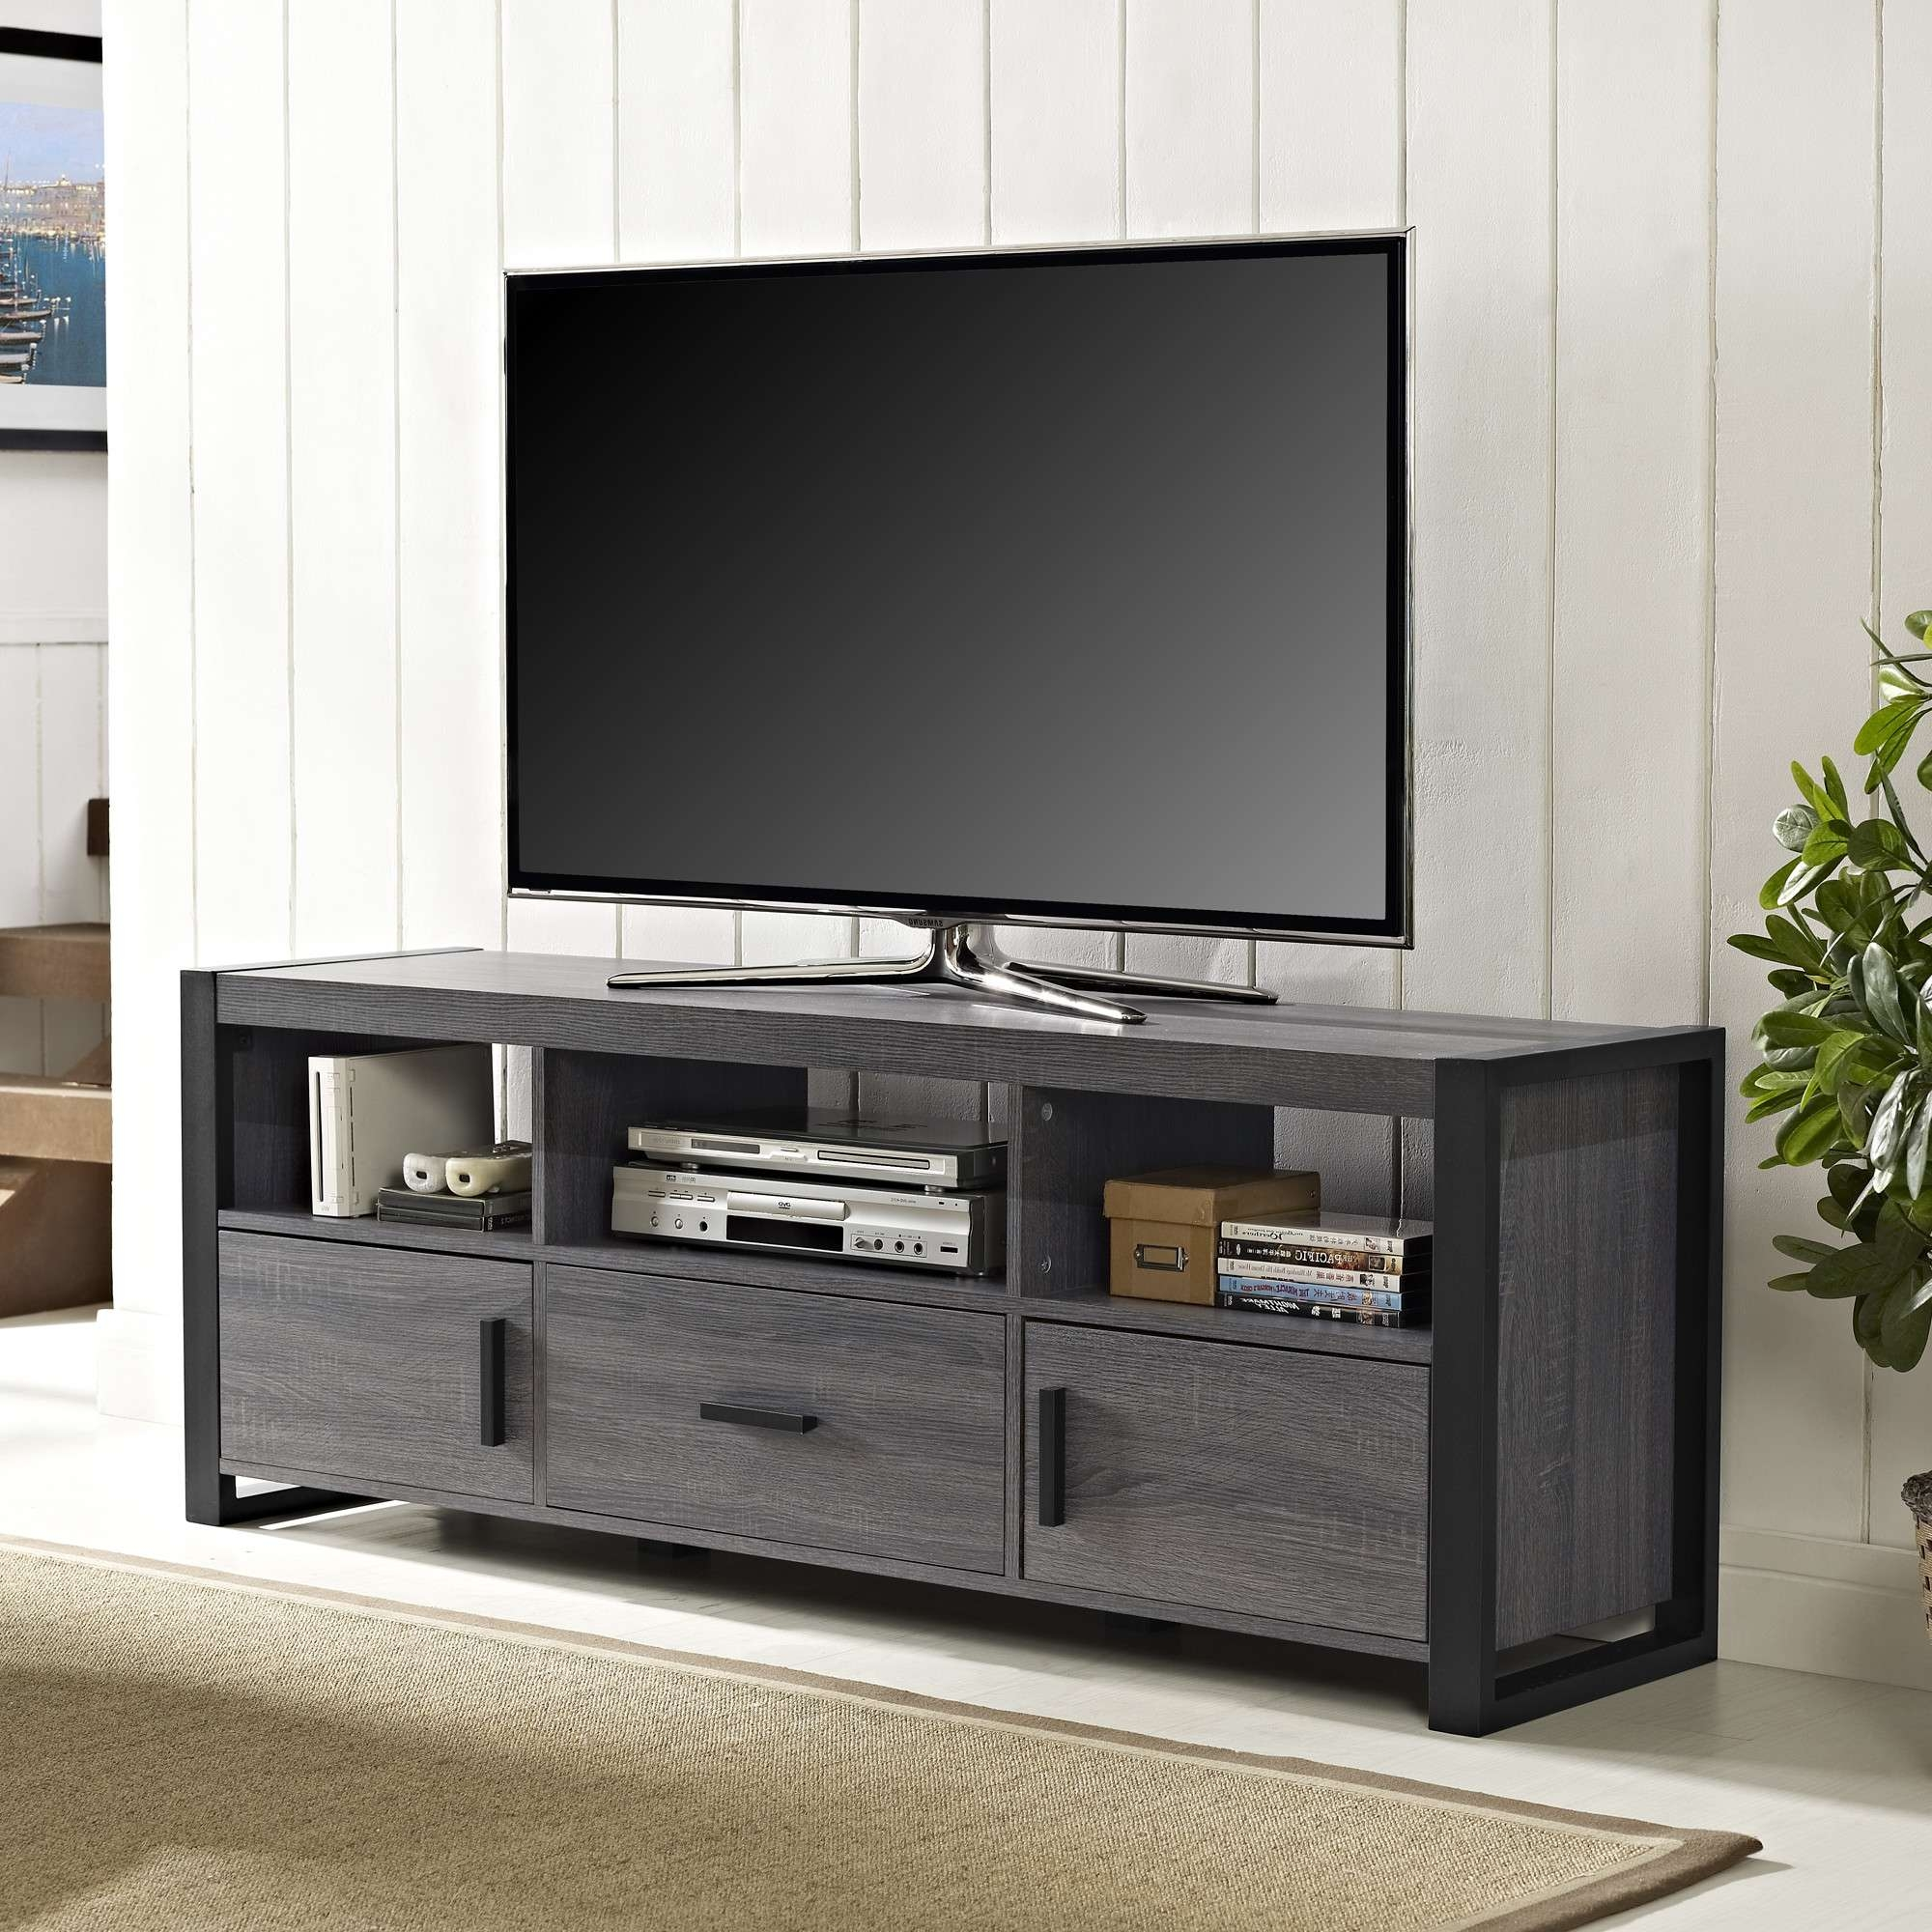 Tv Stand For Inch Flat Screen Media Console Walmart With Doors And For Dark Tv Stands (View 14 of 15)